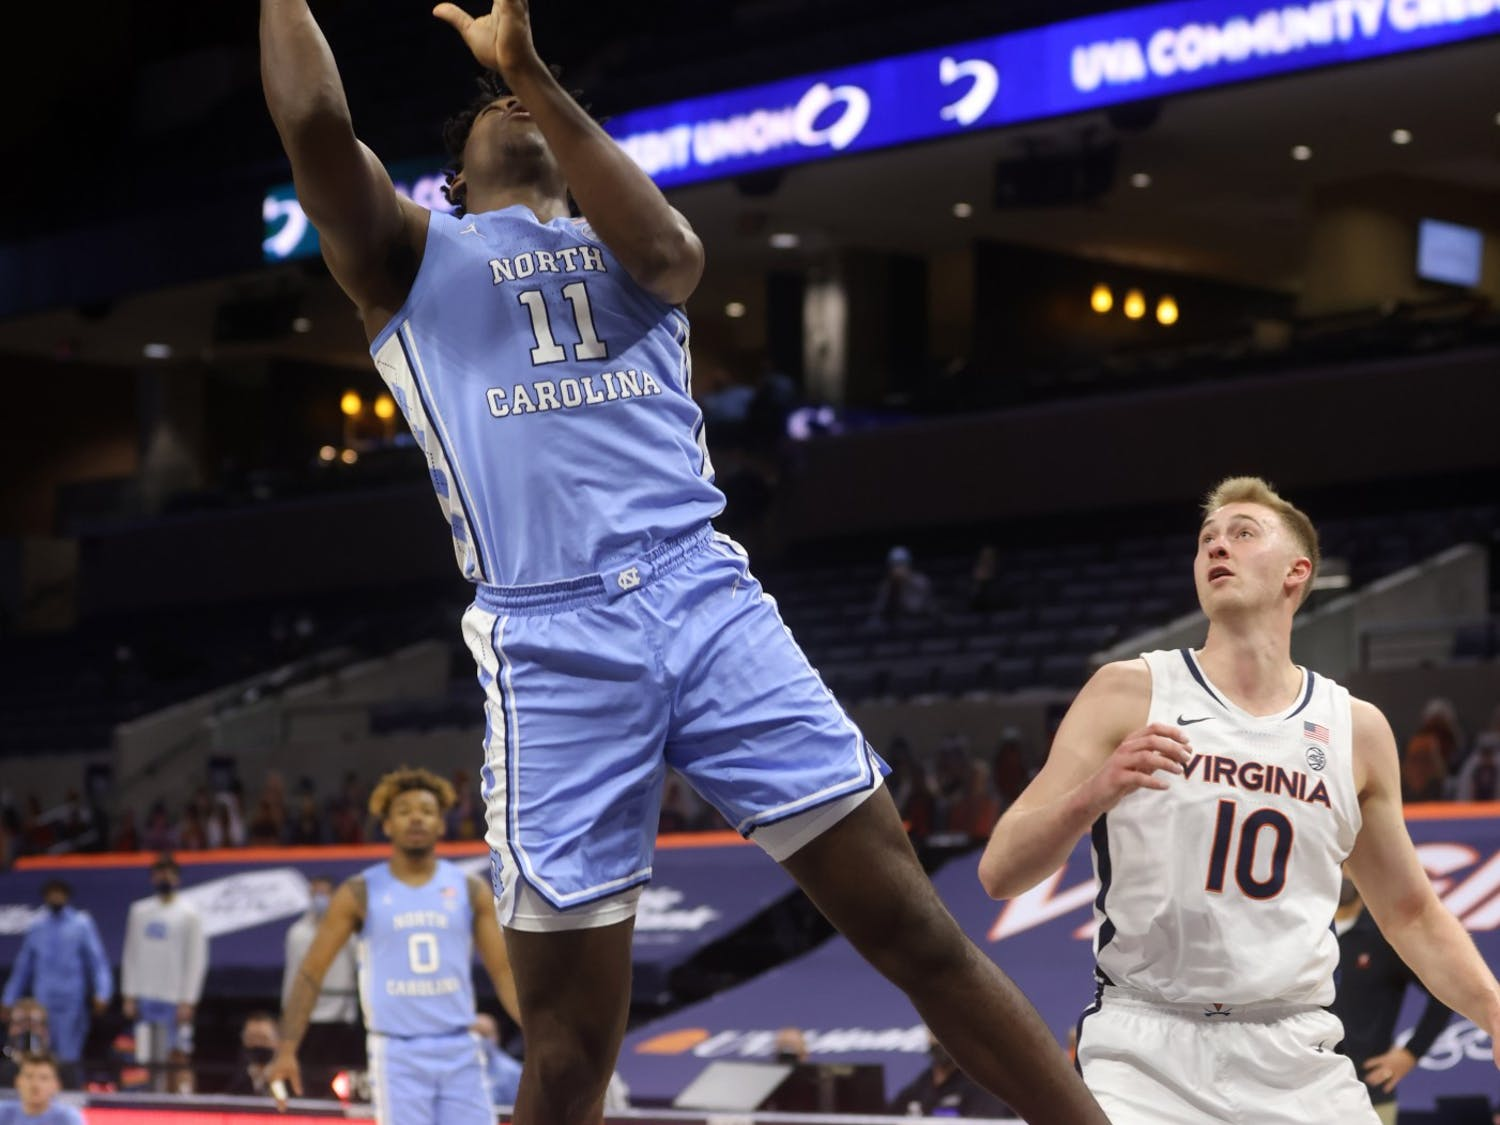 North Carolina forward Day'Ron Sharpe (11) shoots next to Virginia forward Sam Hauser (10) during the game Saturday in Charlottesville. Photo courtesy of Andrew Shurtleff/The Daily Progress.